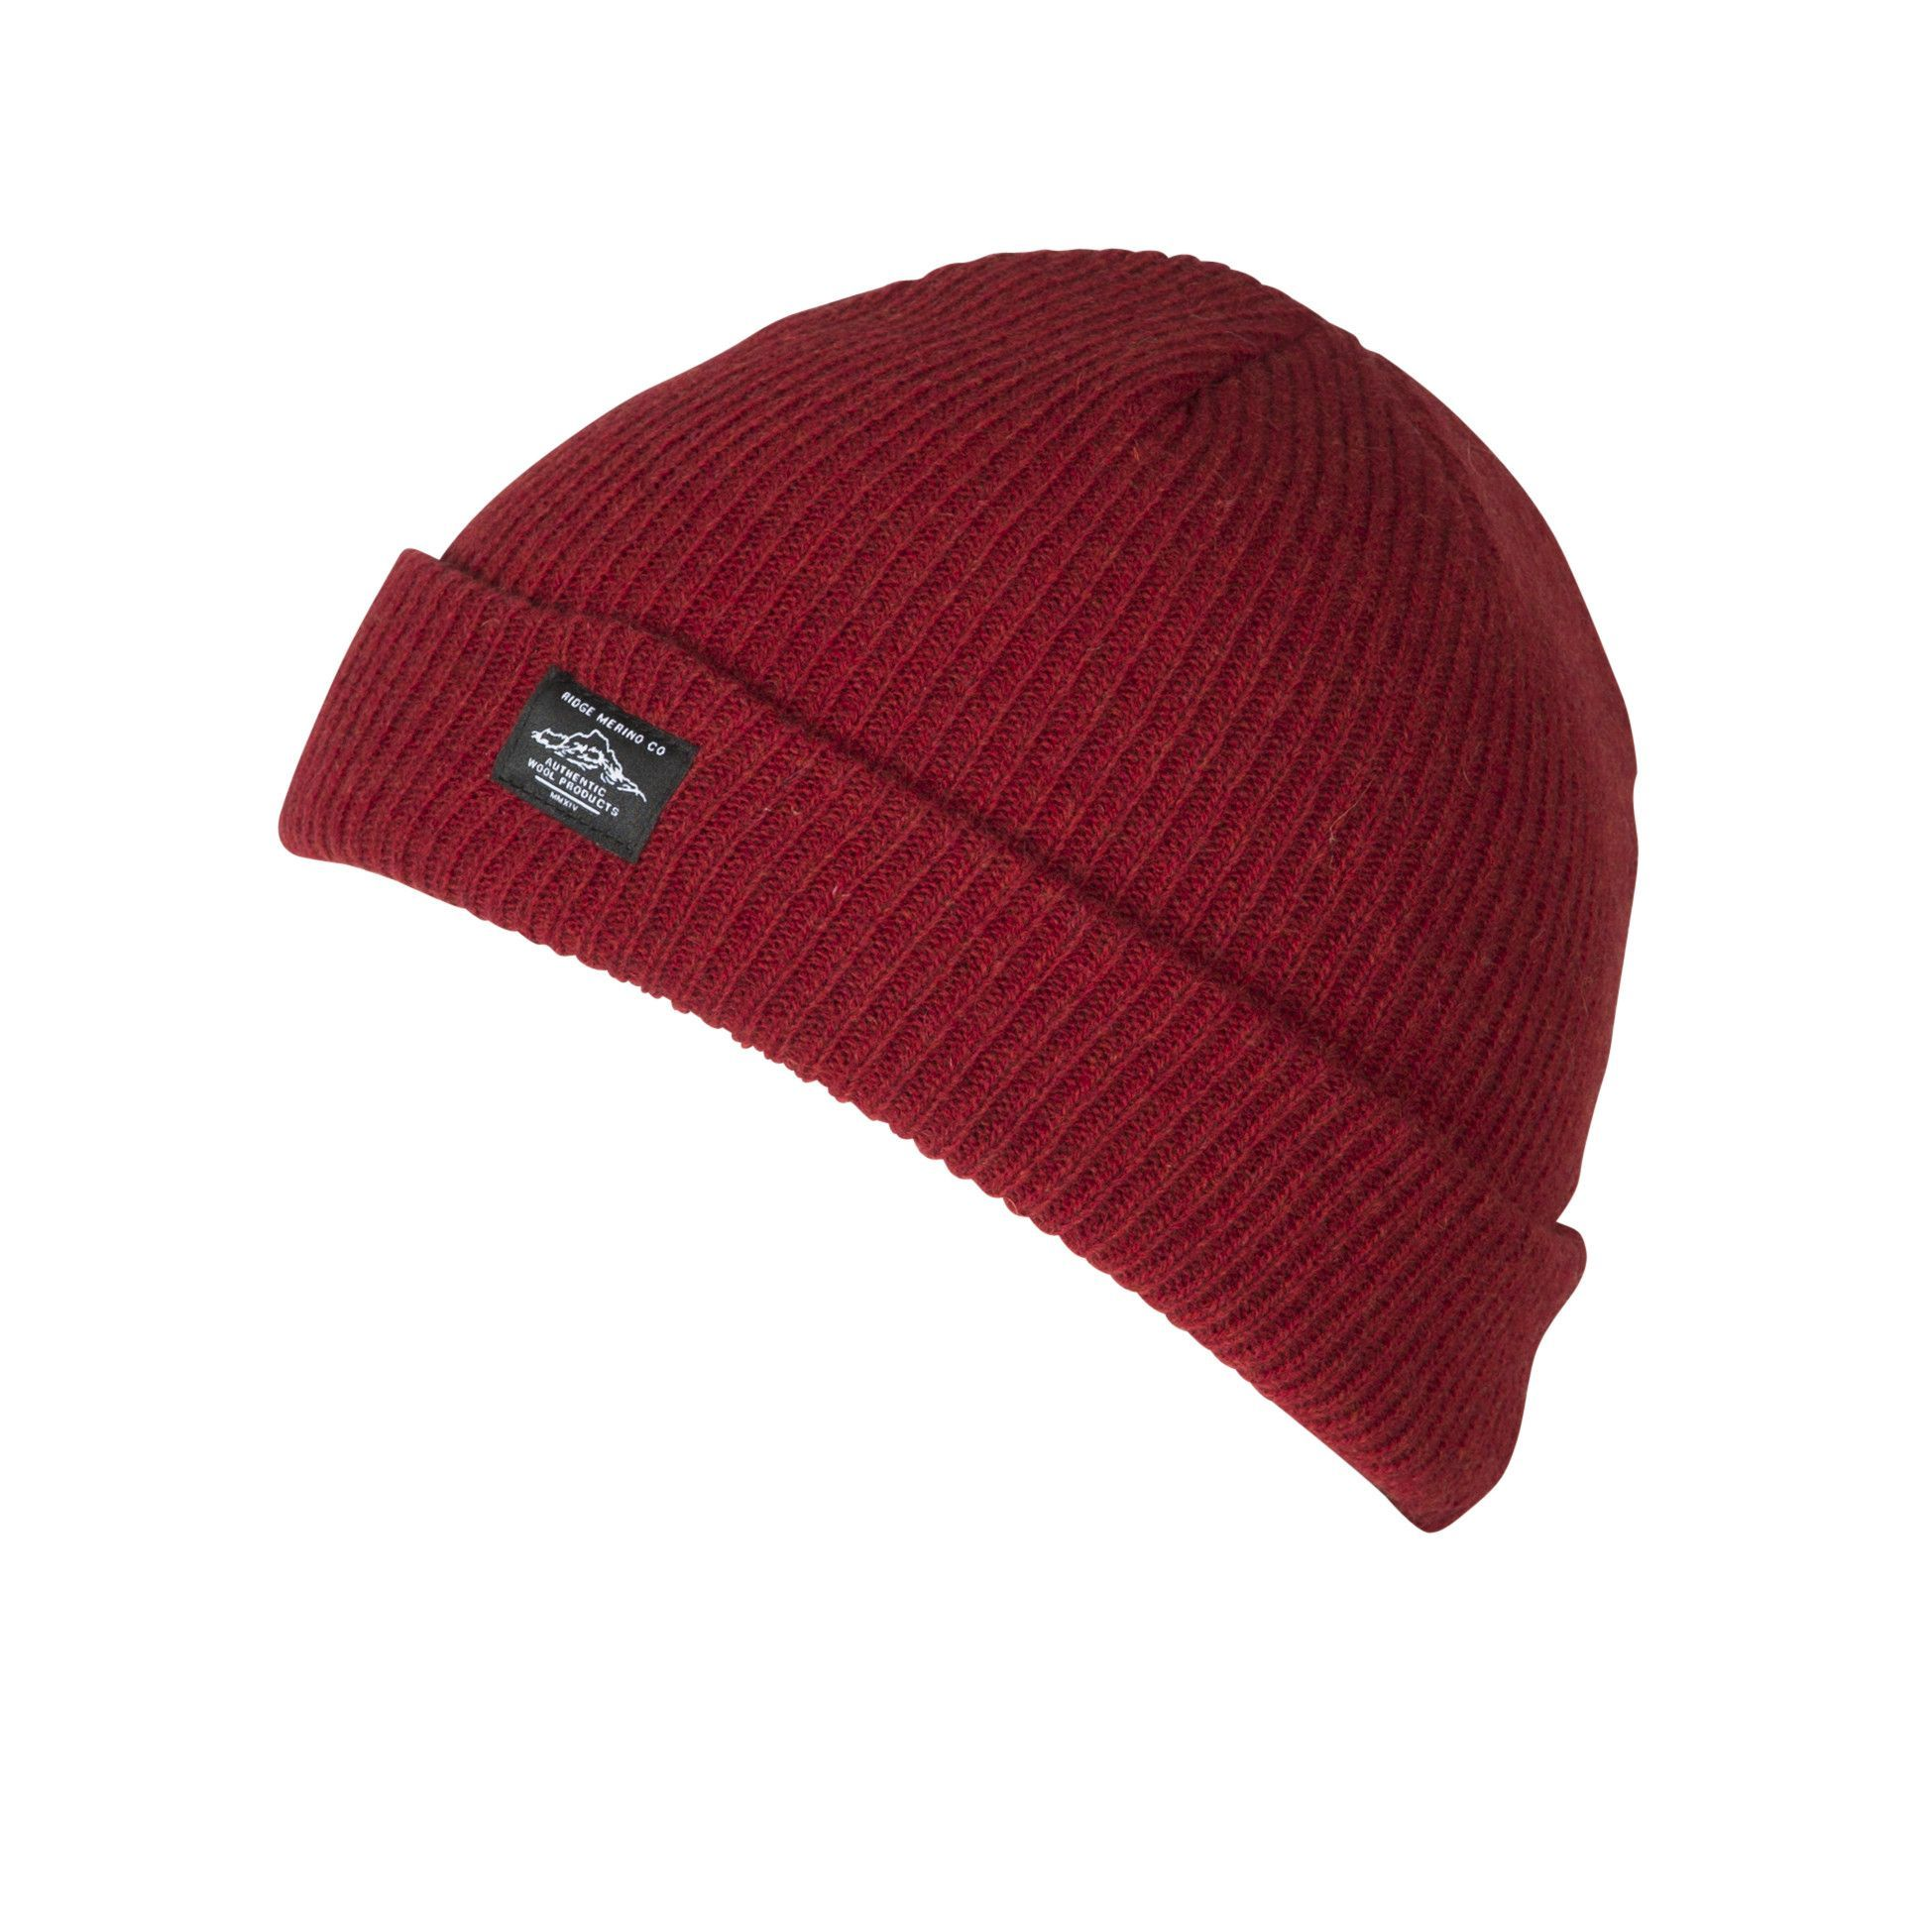 50fec3ecff8a4 The new Banner Mtn. Beanie is knit from 100% Merino wool heathered yarn.